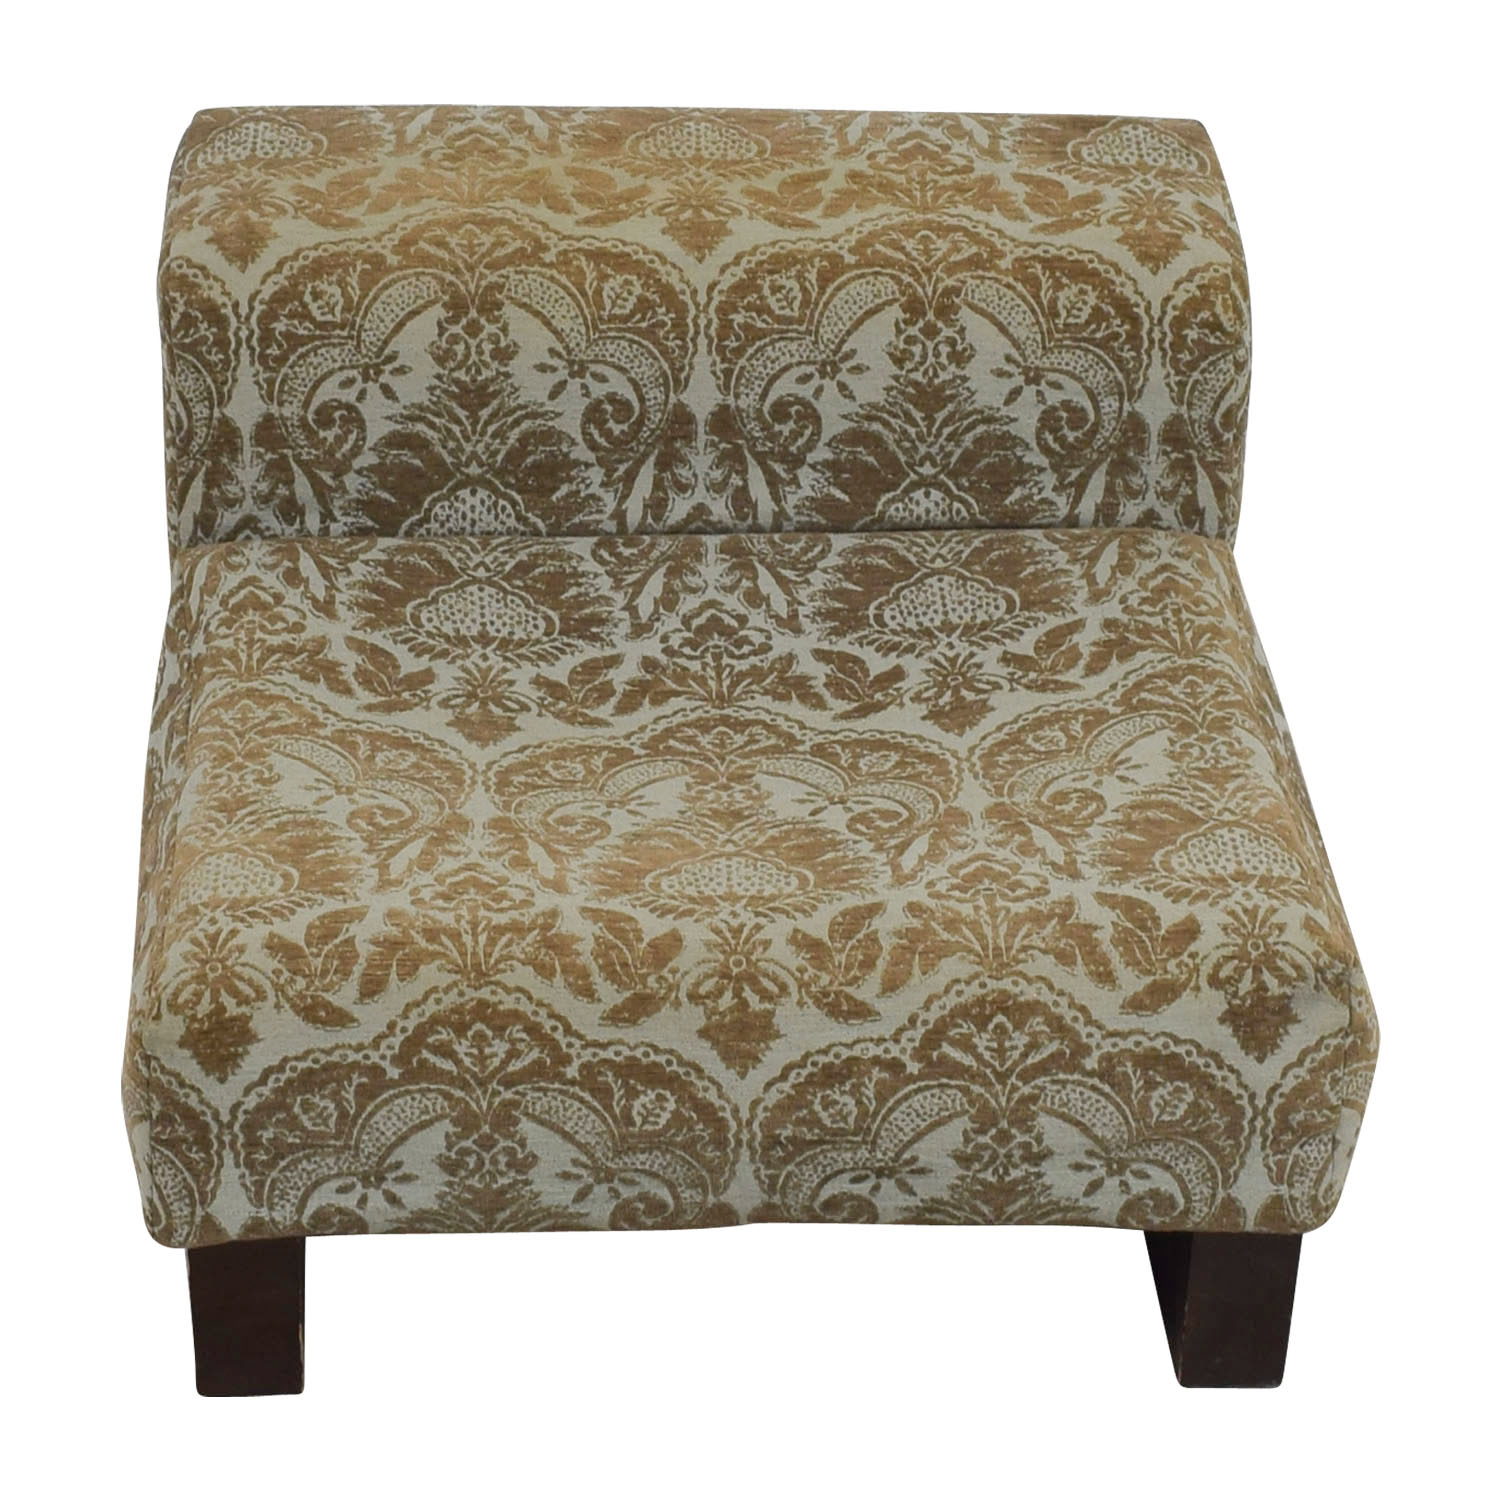 West Elm West Elm Multi-Colored Lounge Accent Chair price